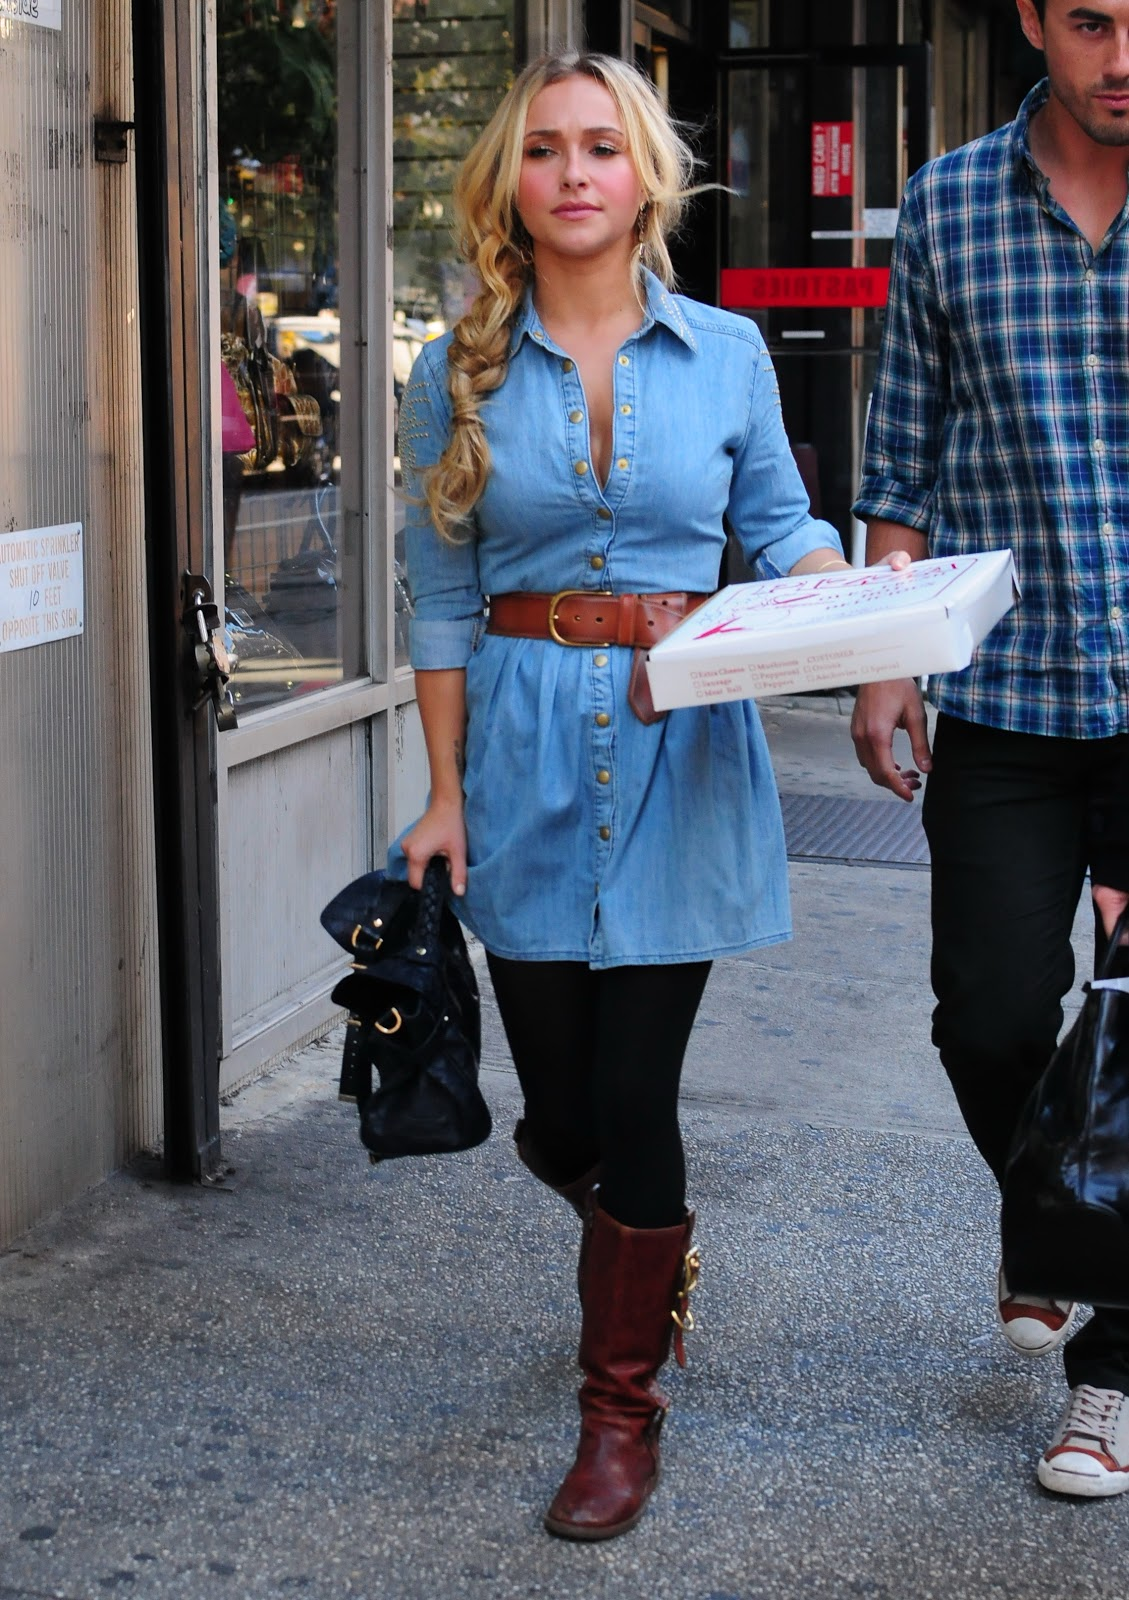 Hayden panettiere getting pizza in new york